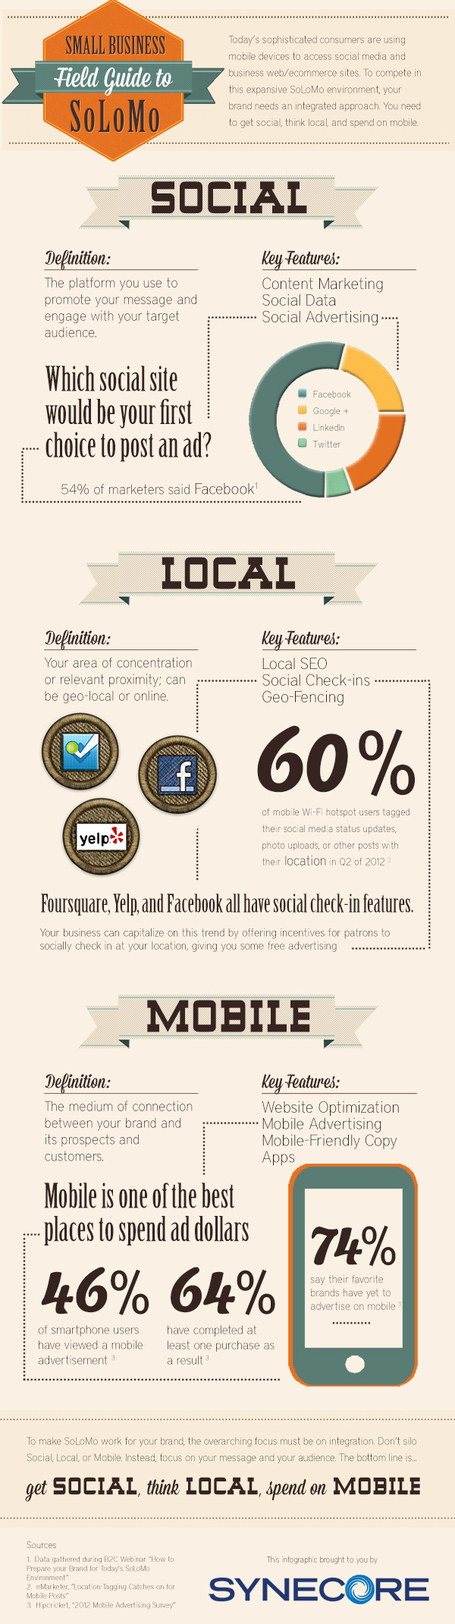 Small Business Field Guide to SoLoMo (Infographic) | Social Media (network, technology, blog, community, virtual reality, etc...) | Scoop.it